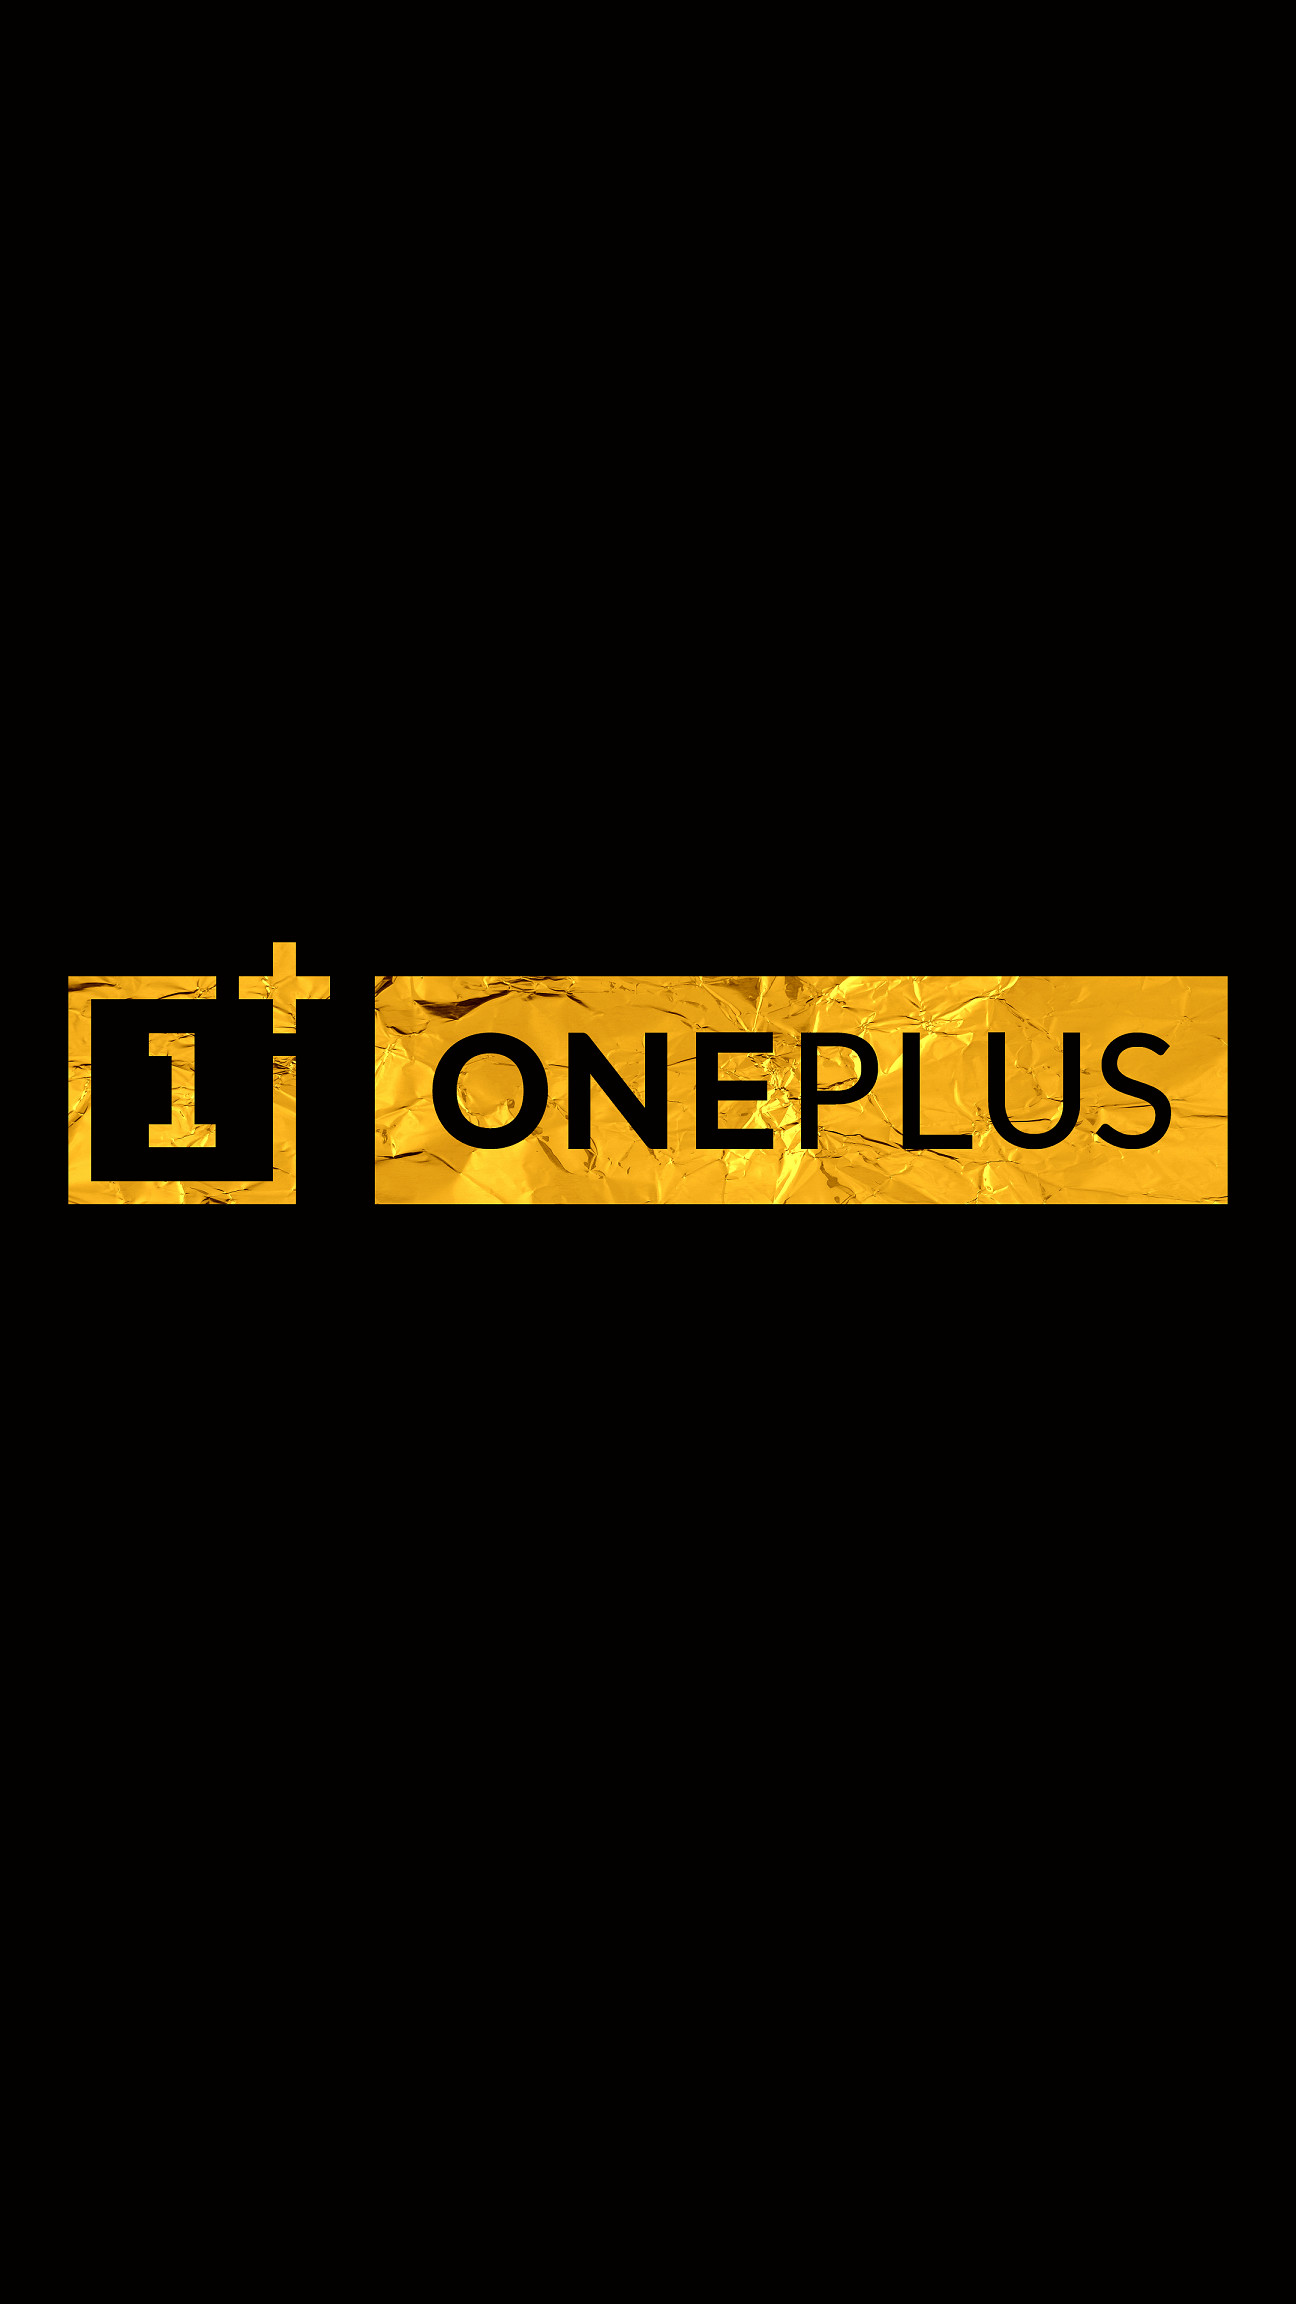 oneplus wallpapers 4k pure amoled super gold backgrounds wallpapersafari wallpaperaccess getwallpapers